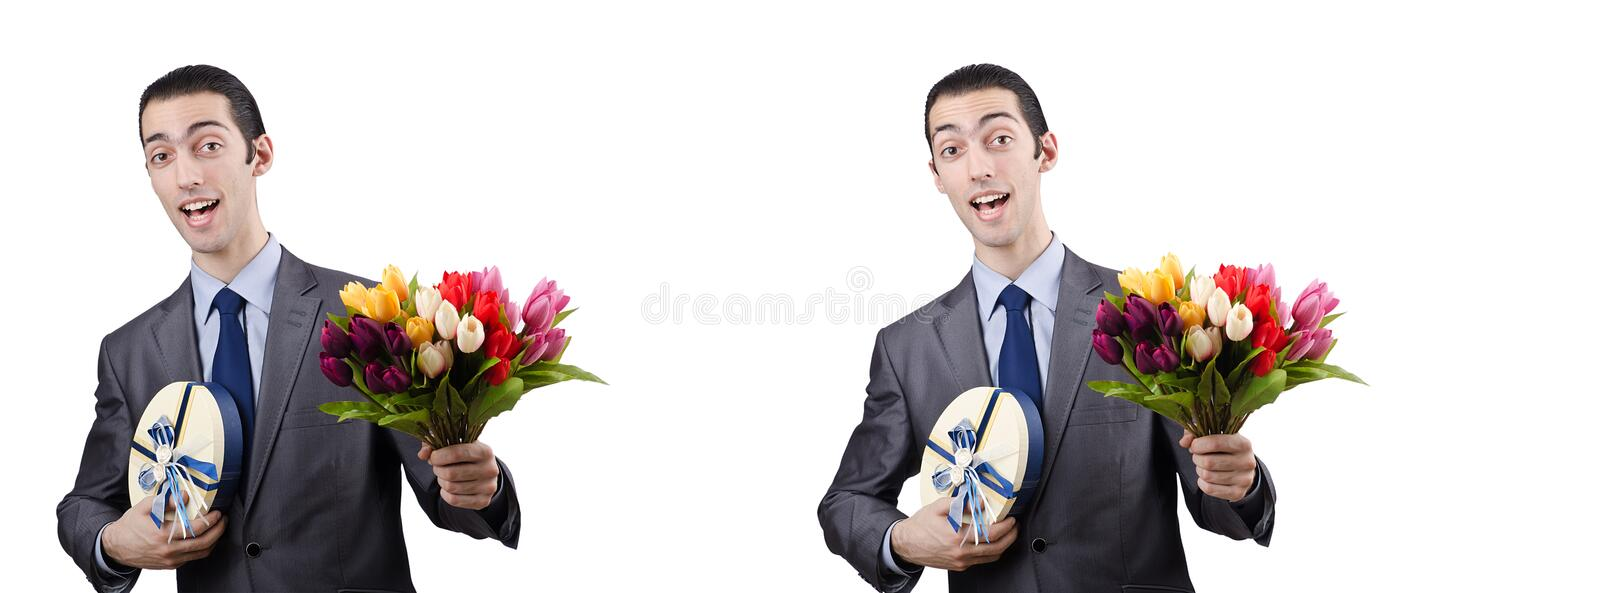 The businessman with giftbox and flowers. Businessman with giftbox and flowers royalty free stock images